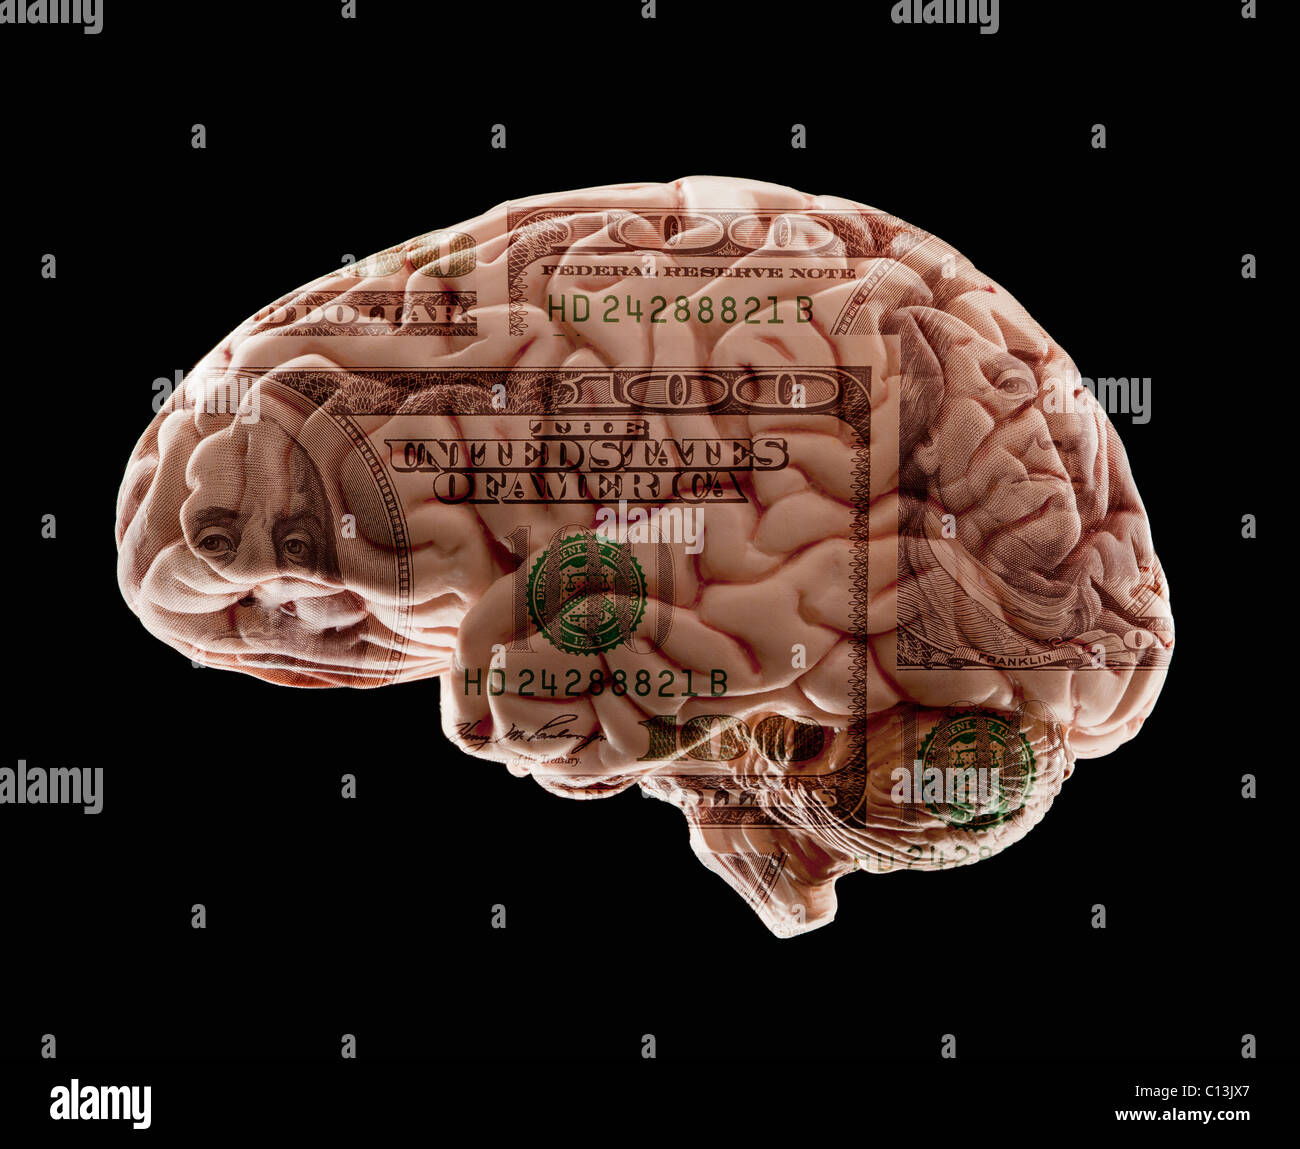 Composition du cerveau humain et modèle one hundred dollar note Photo Stock